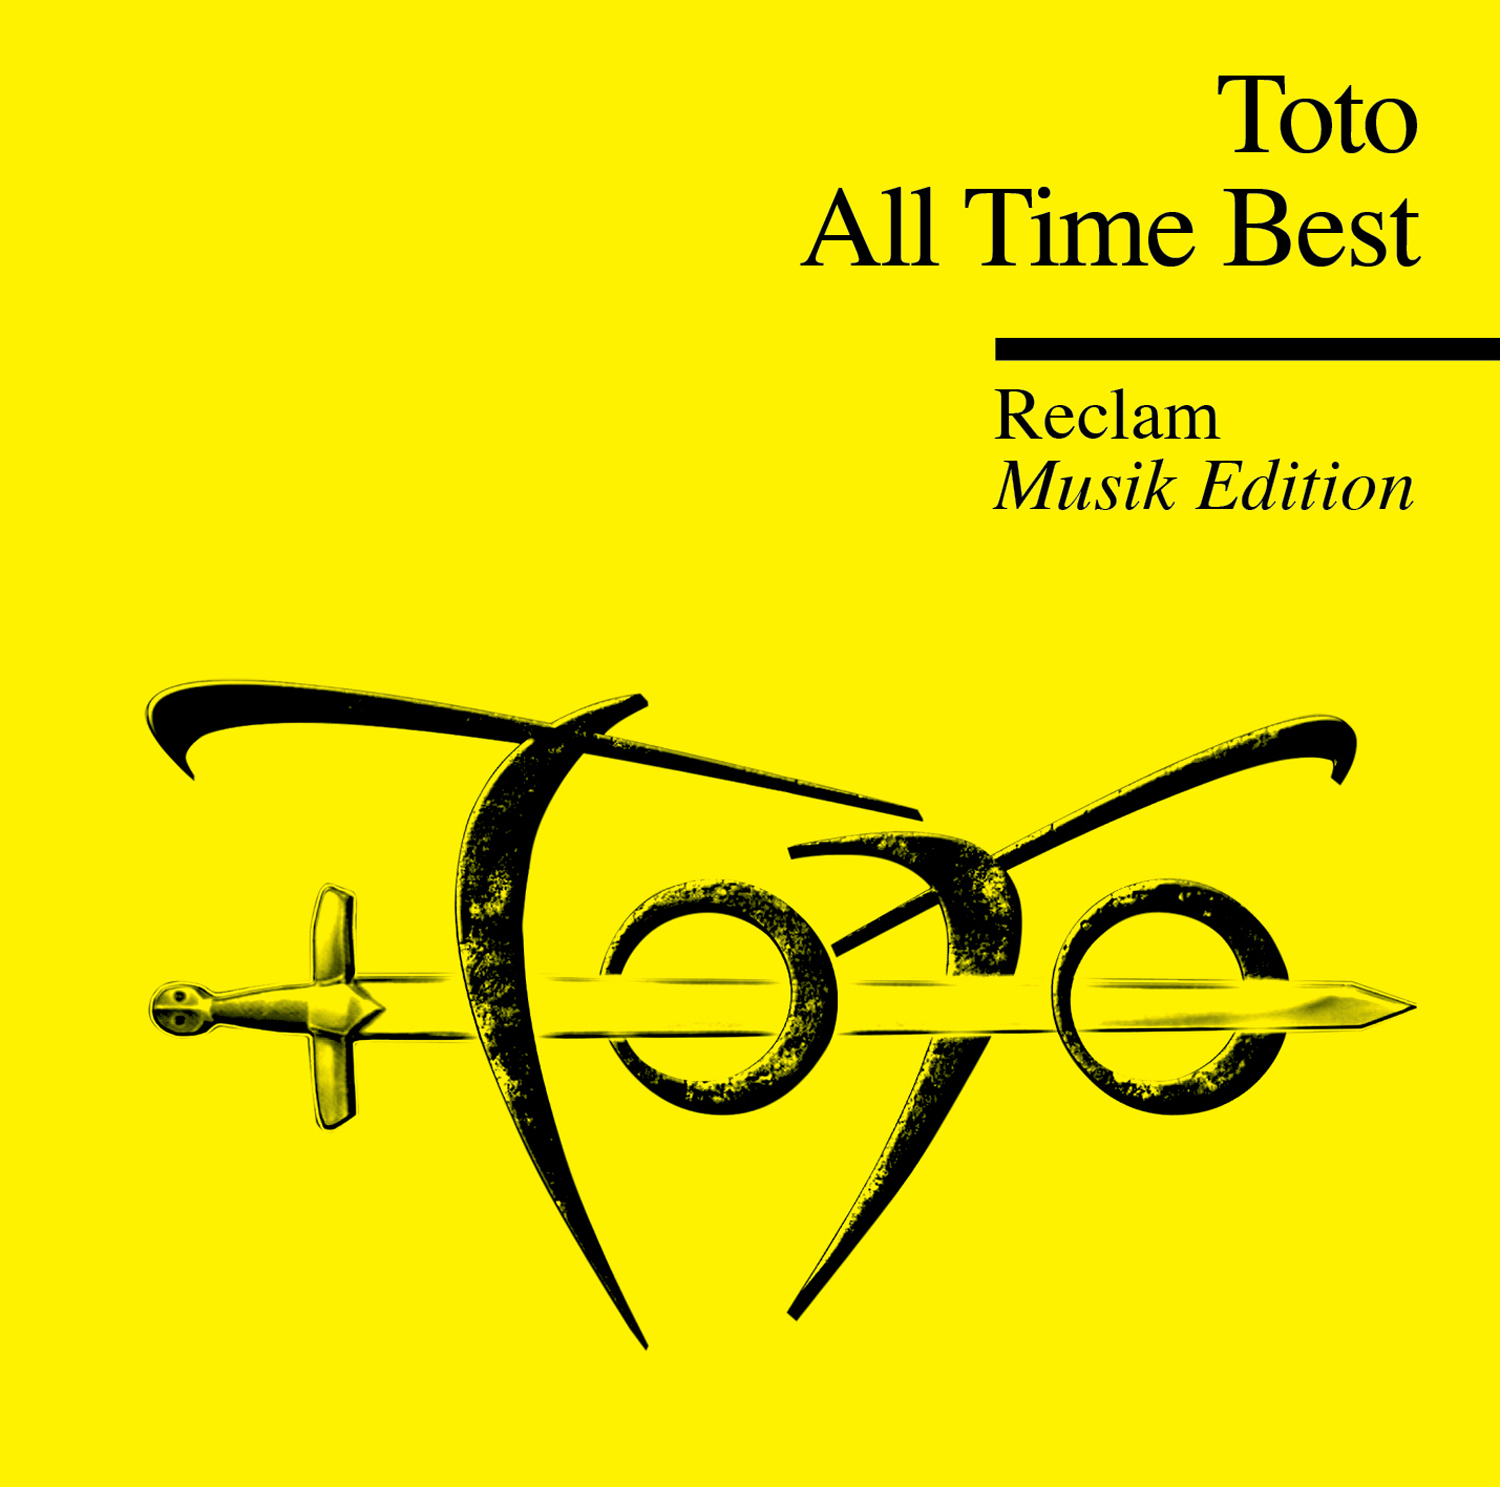 All Time Best - Reclam Musik Edition - Toto